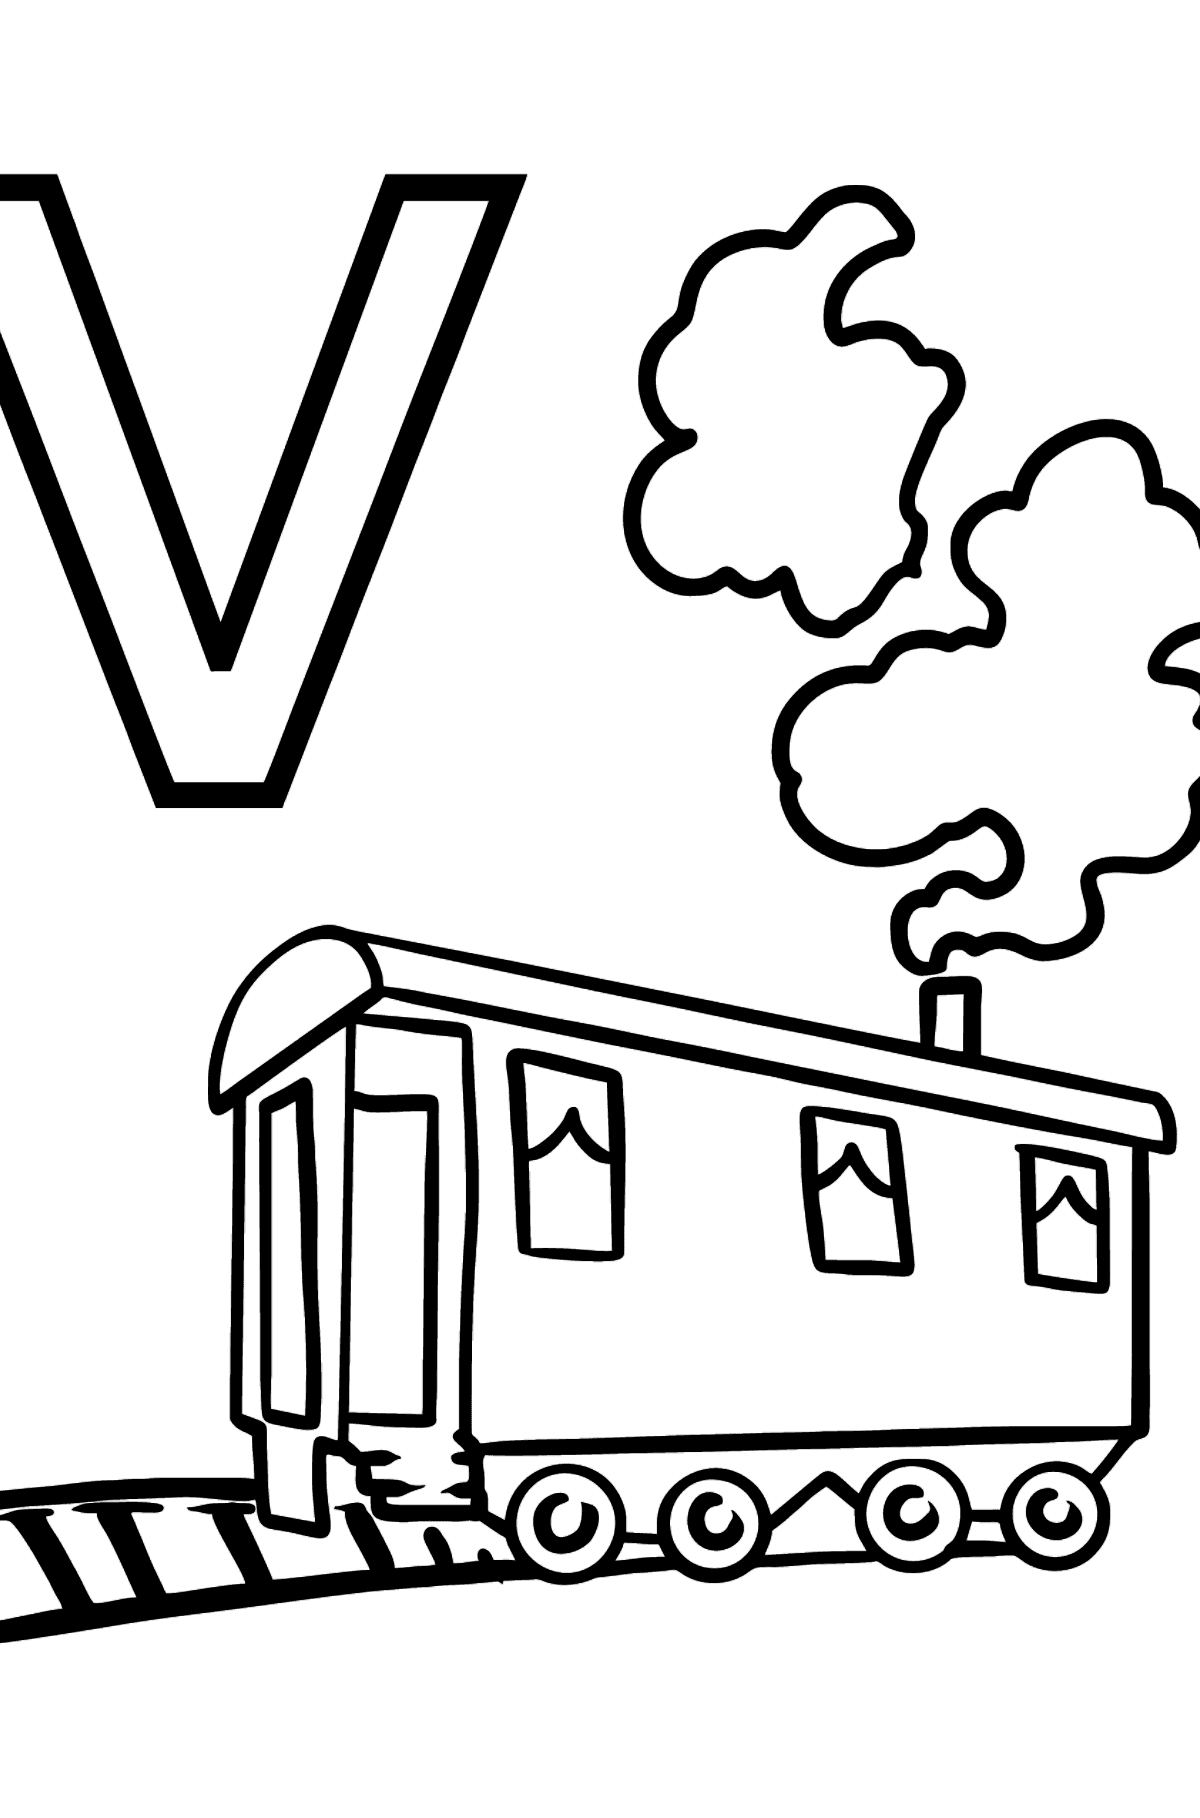 Spanish Letter V coloring pages - VAGÓN - Coloring Pages for Kids